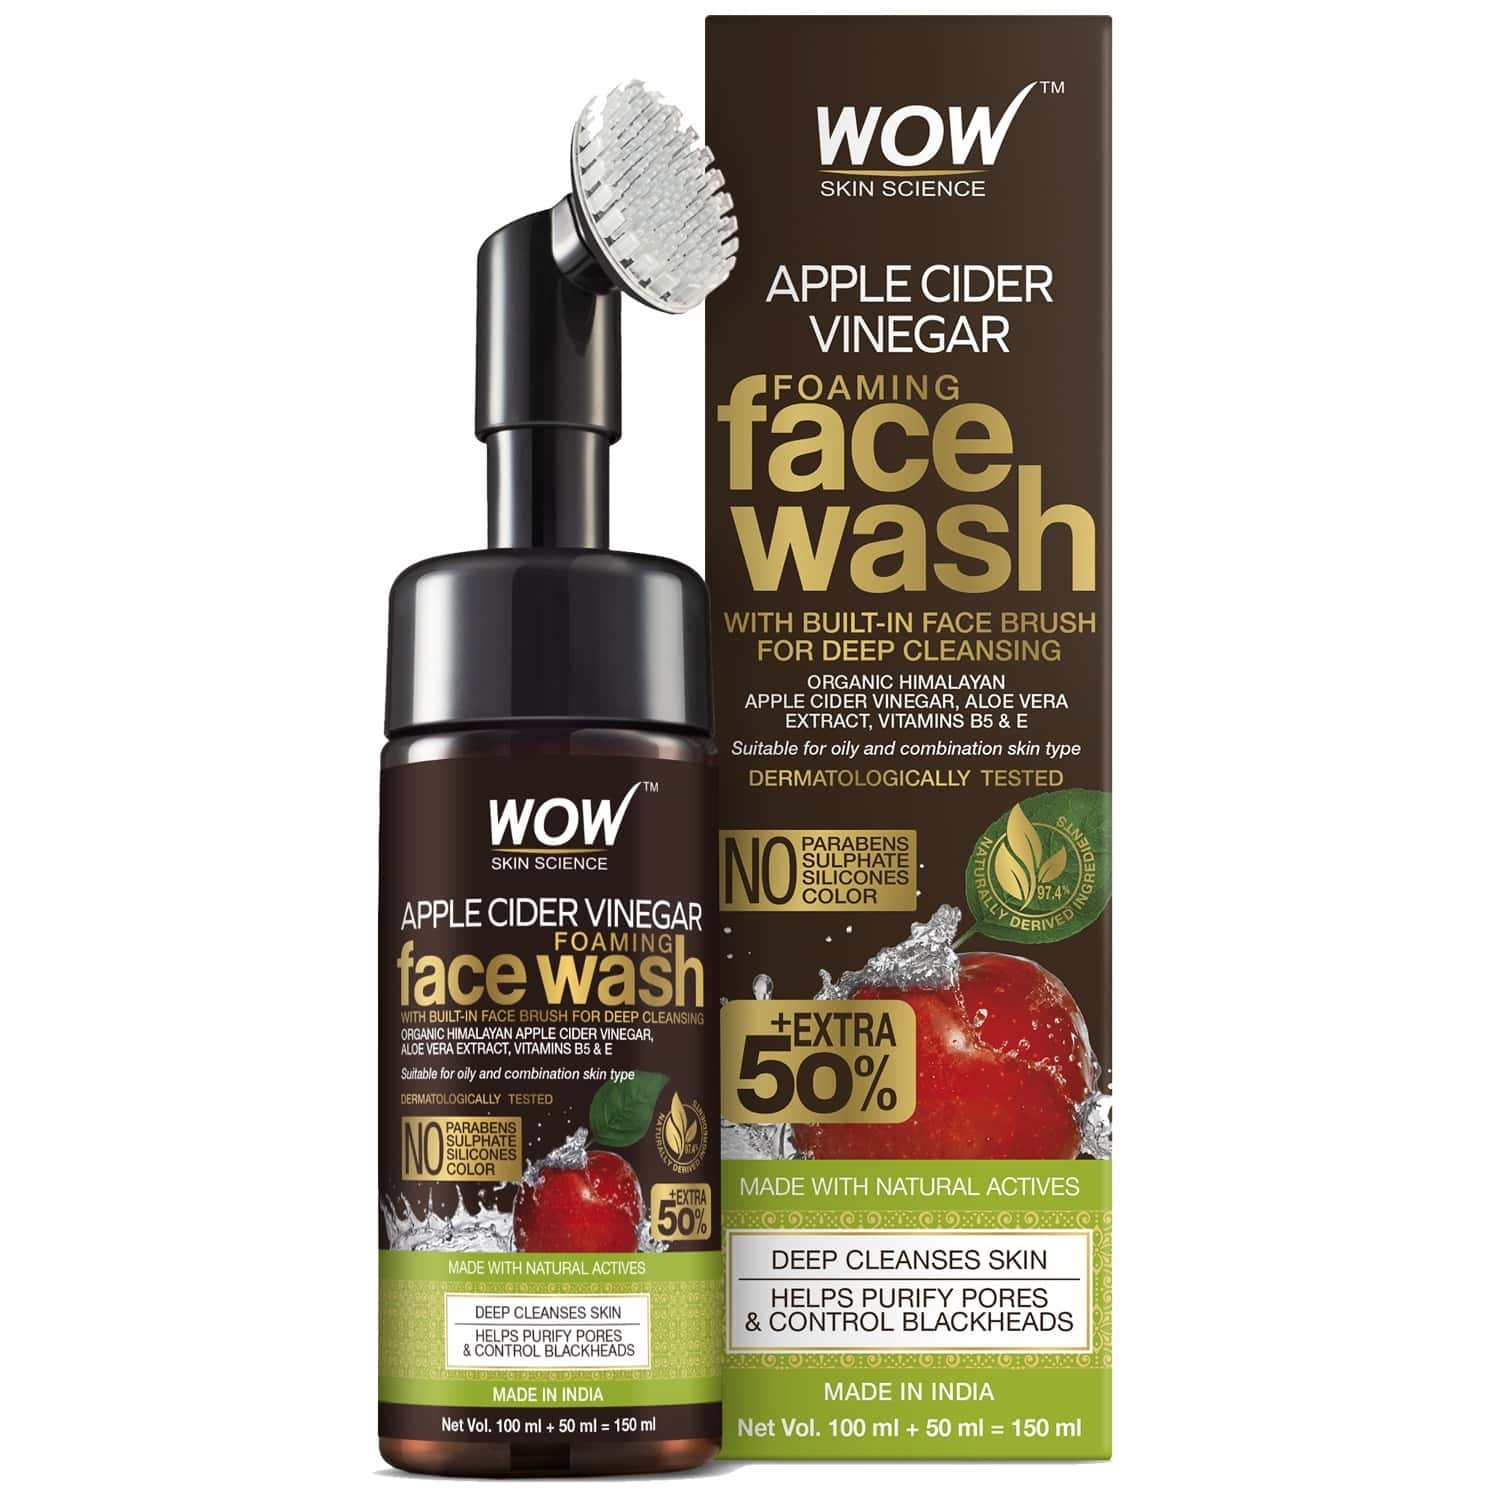 Wow Apple Cider Vinegar Foaming Face Wash (with Built-in Brush), 150 Ml